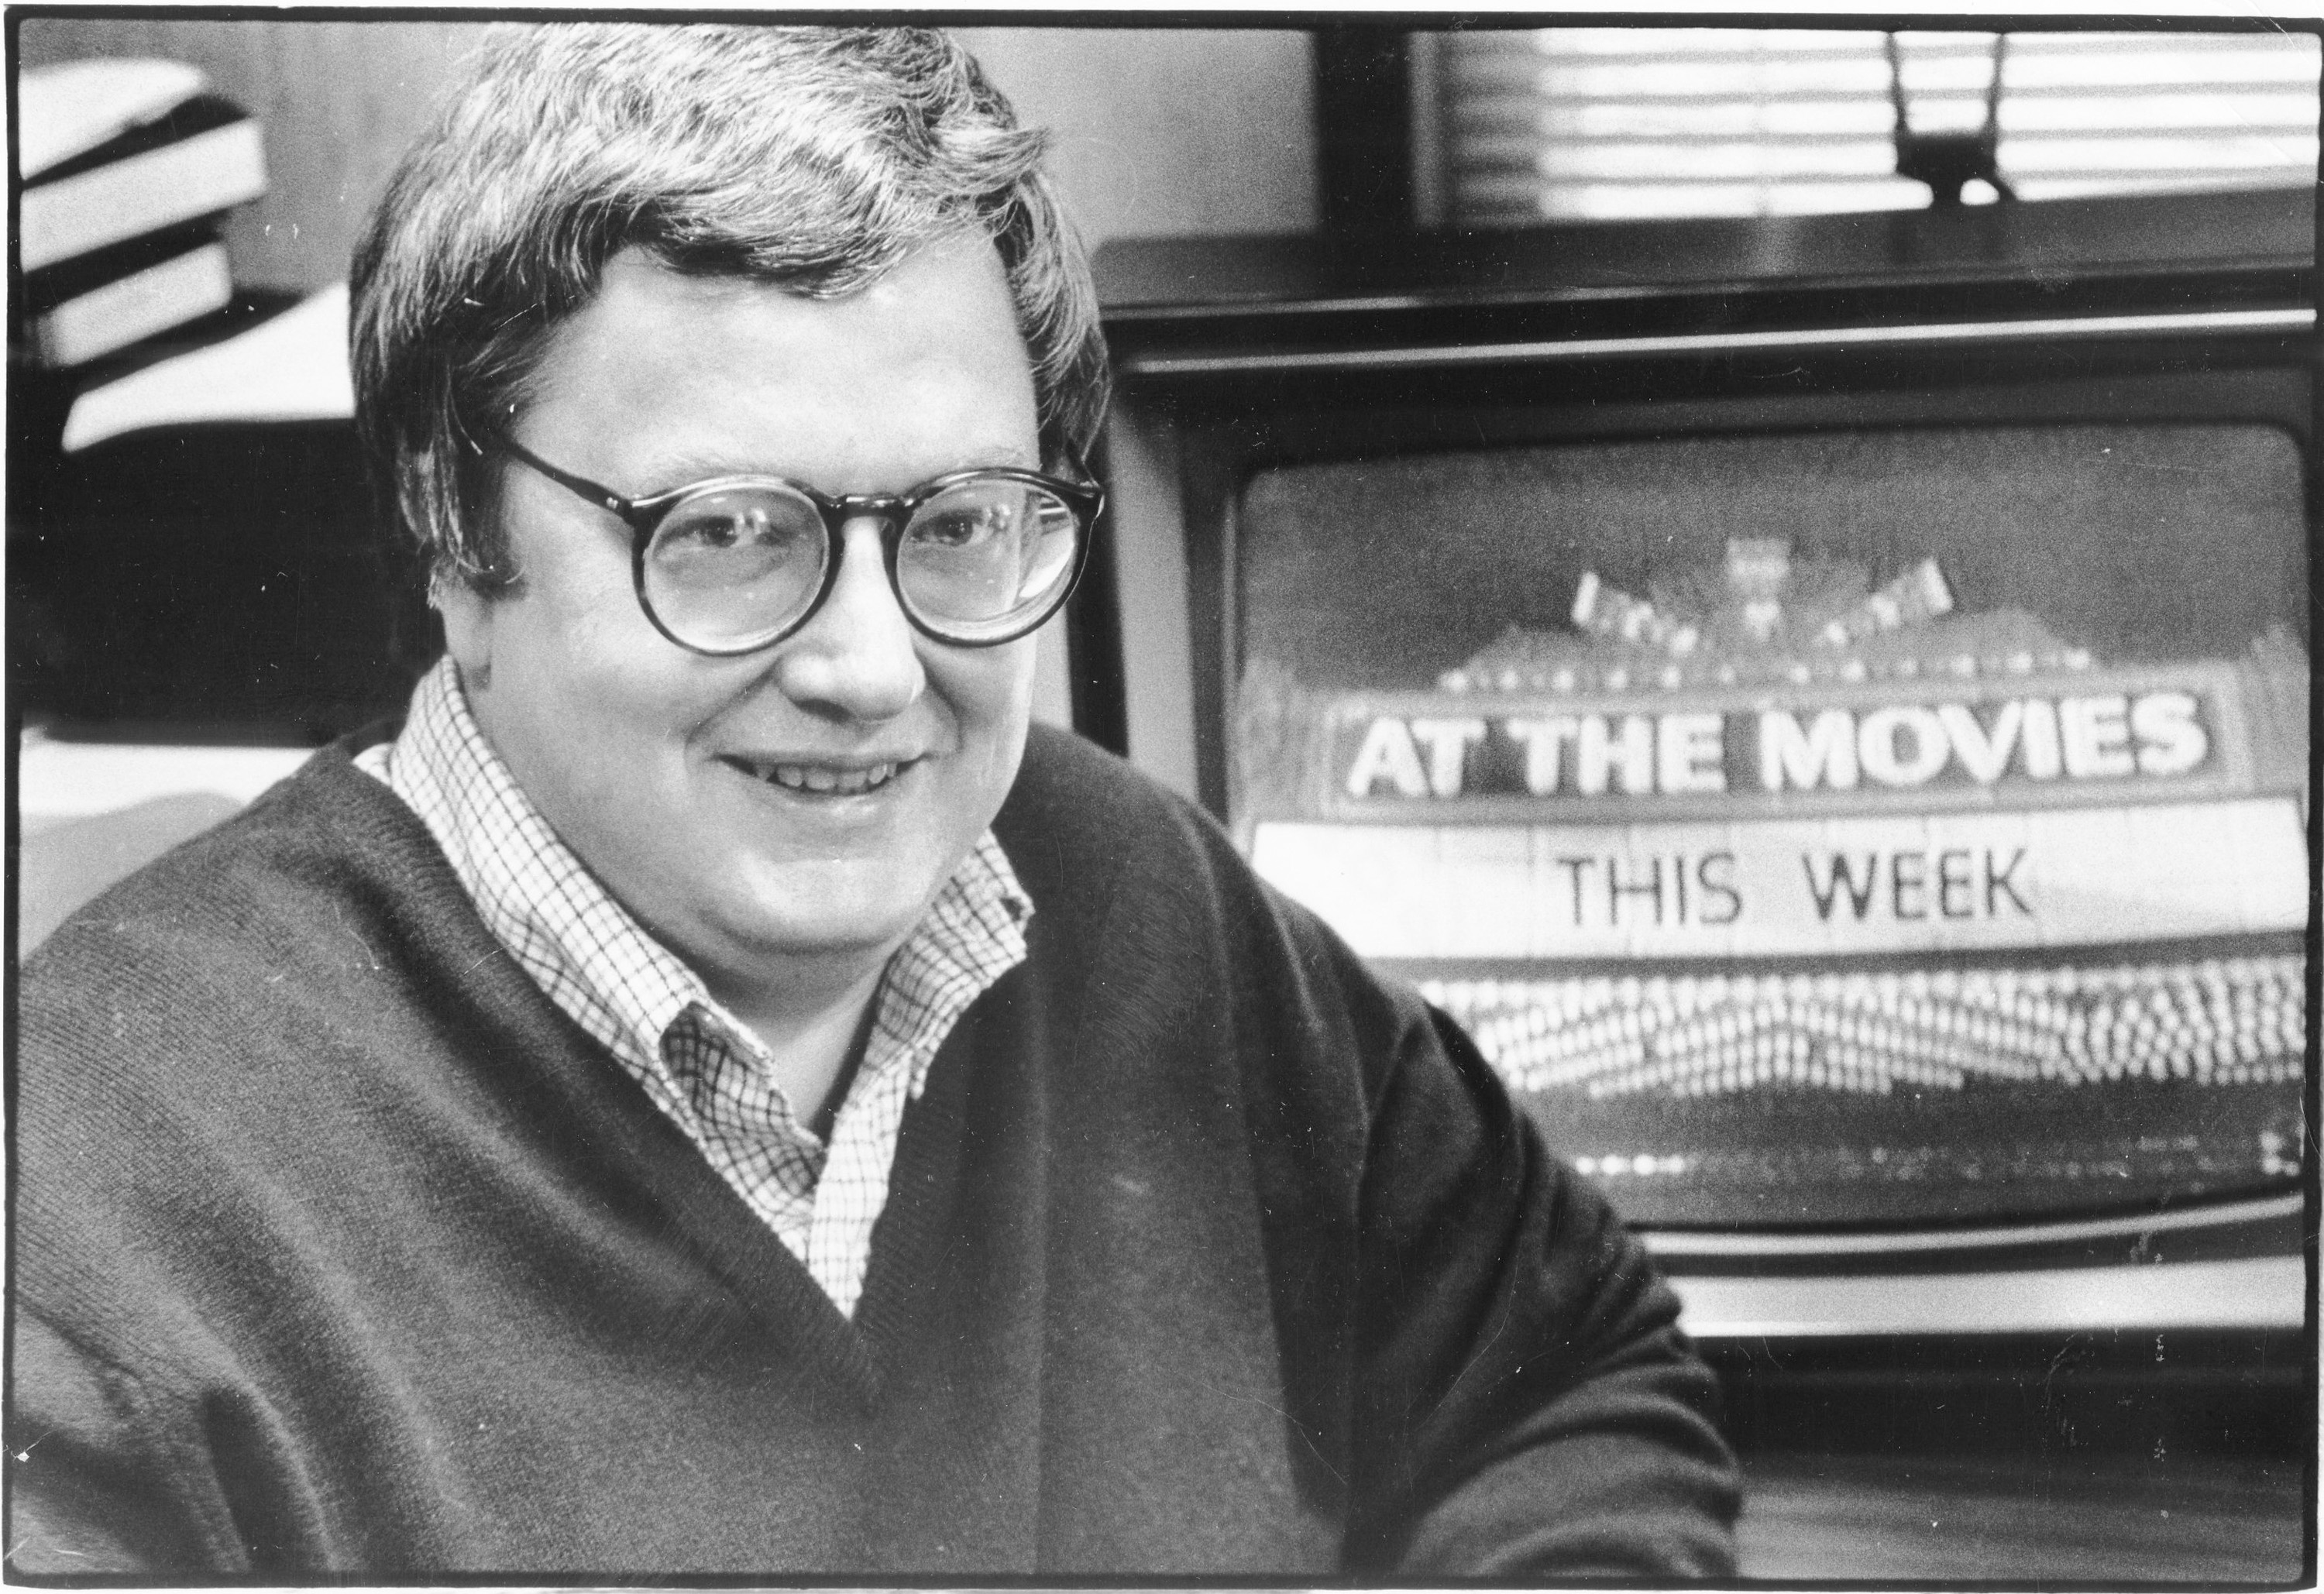 Roger Ebert, the Pulitzer Prize-winning movie critic for the Chicago Sun-Times.